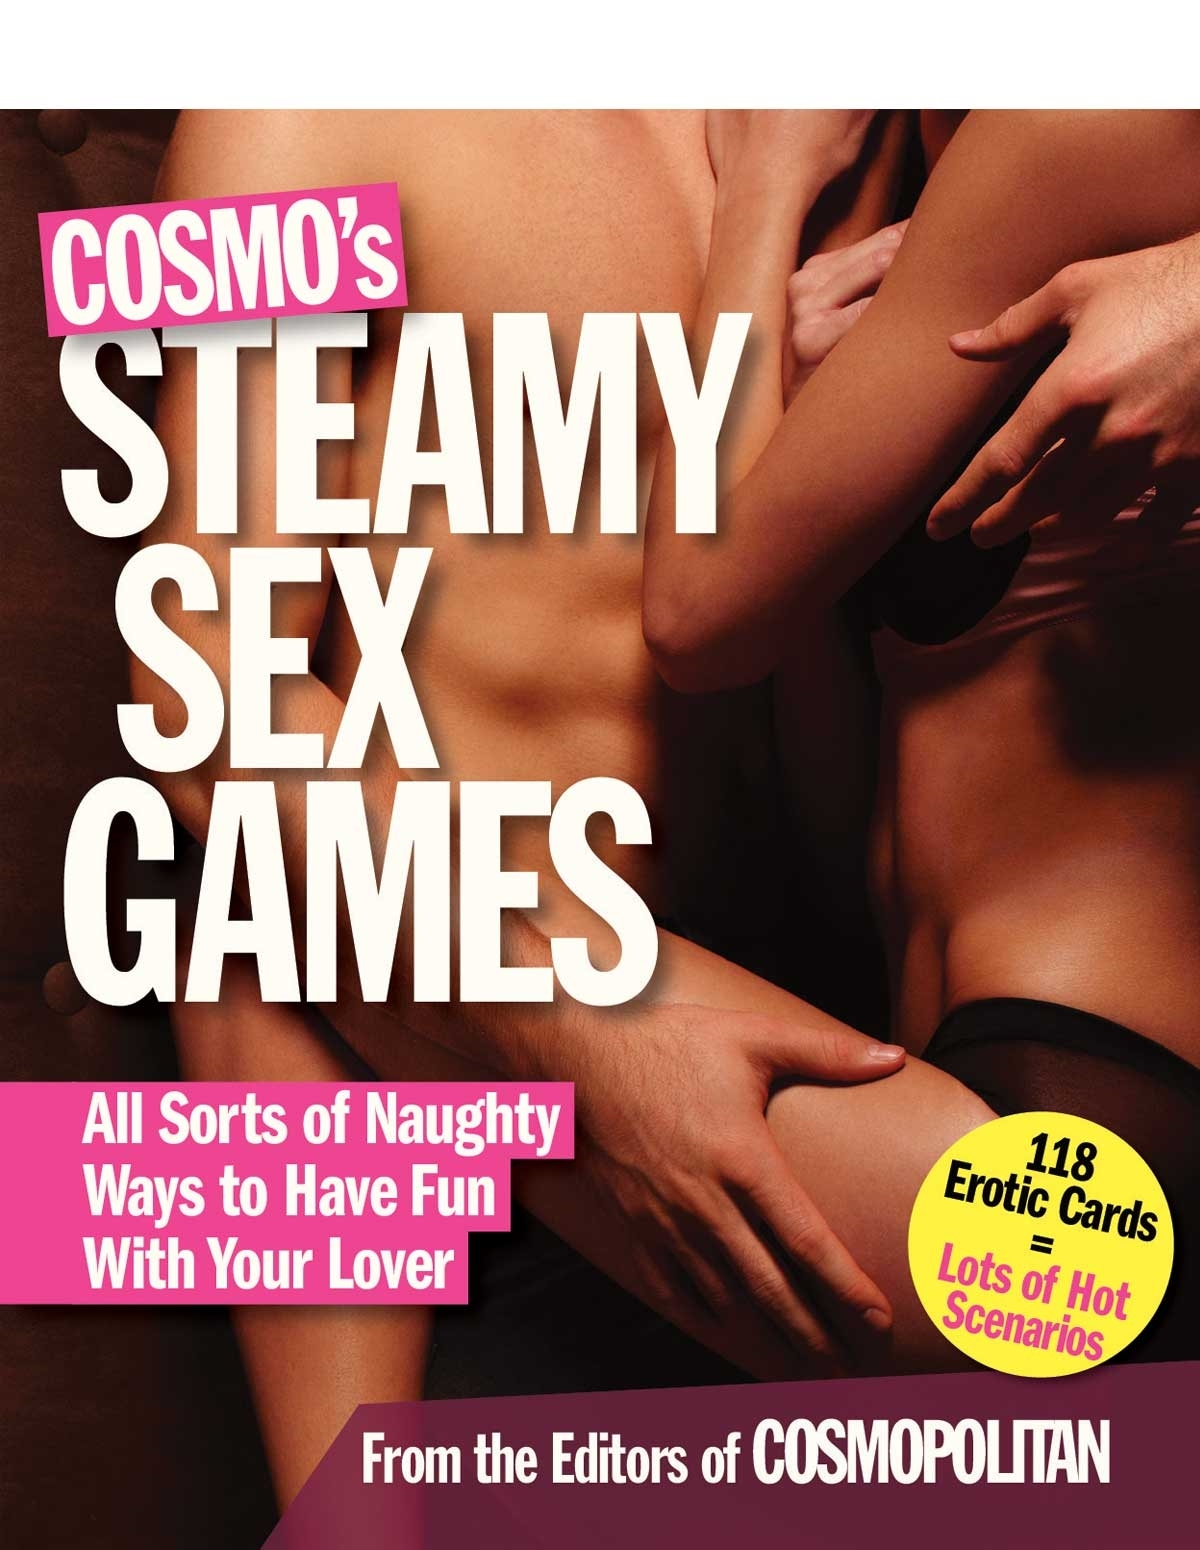 Cosmo Steamy Sex Games